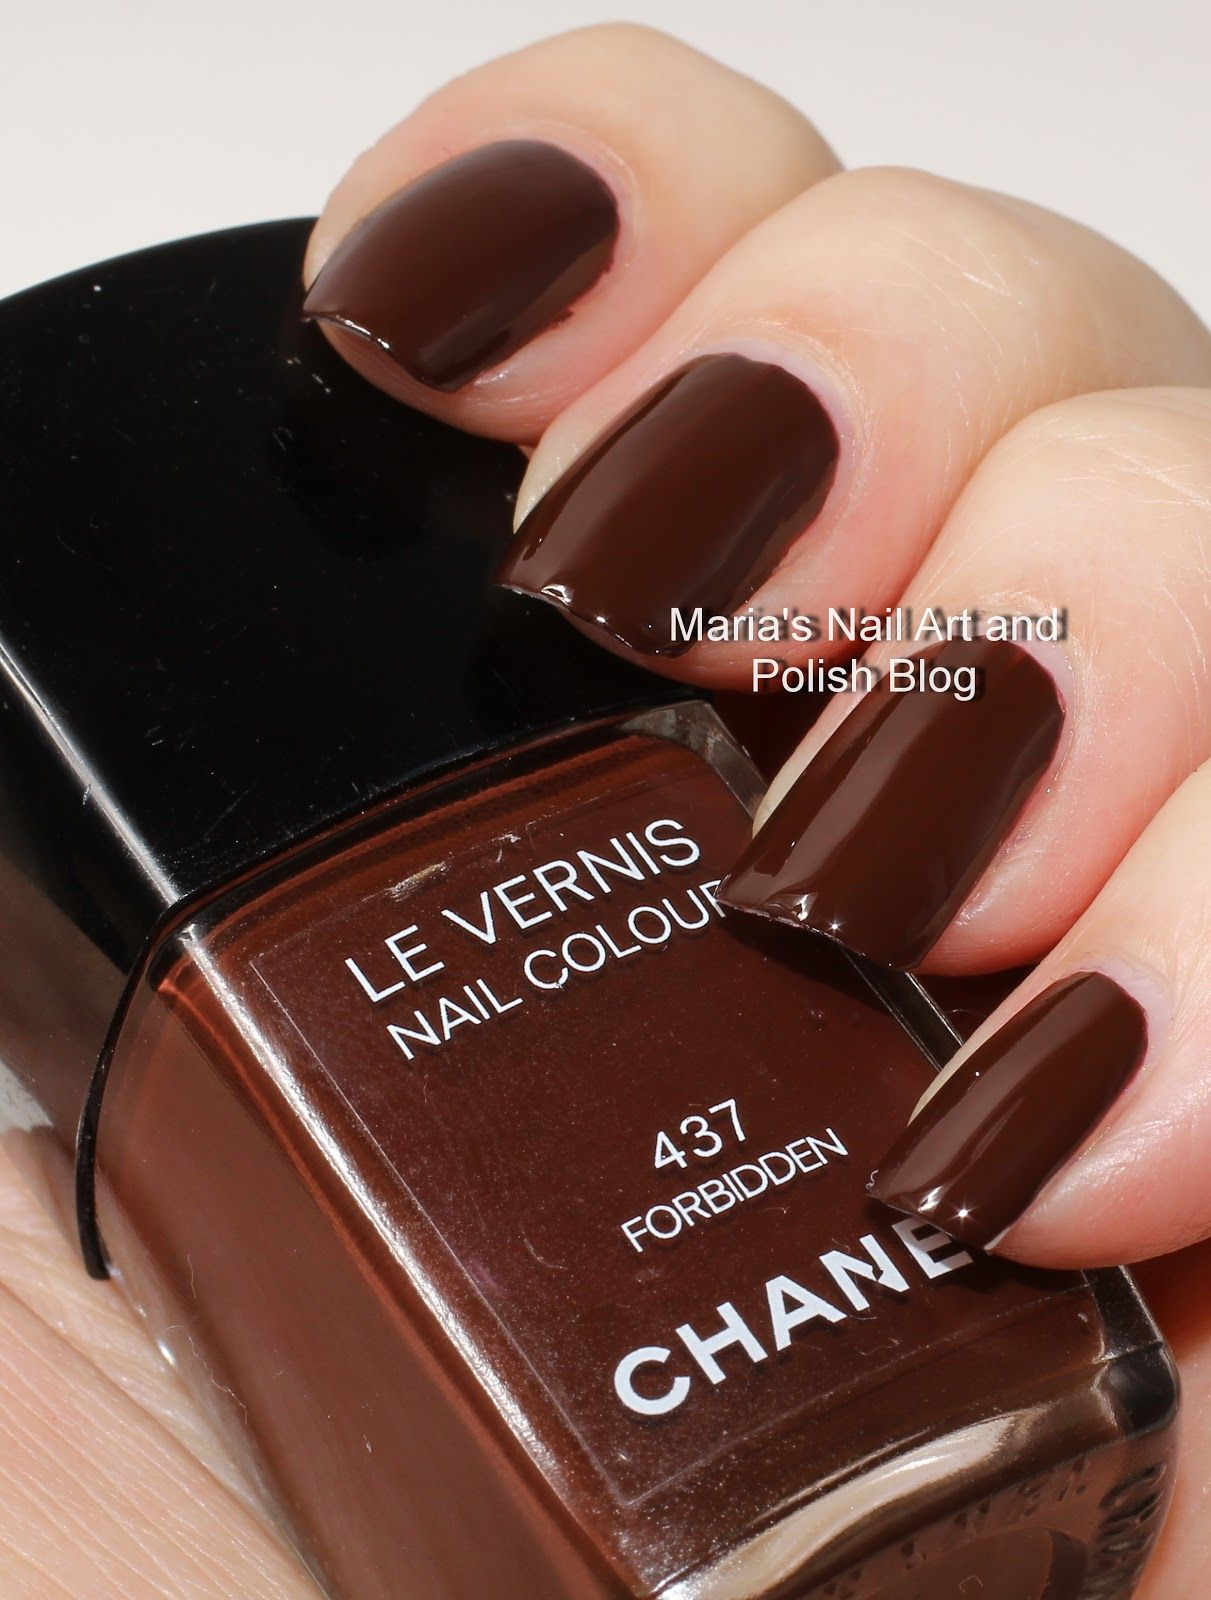 Chanel Forbidden Noirs Obscurs fall 2009 swatches